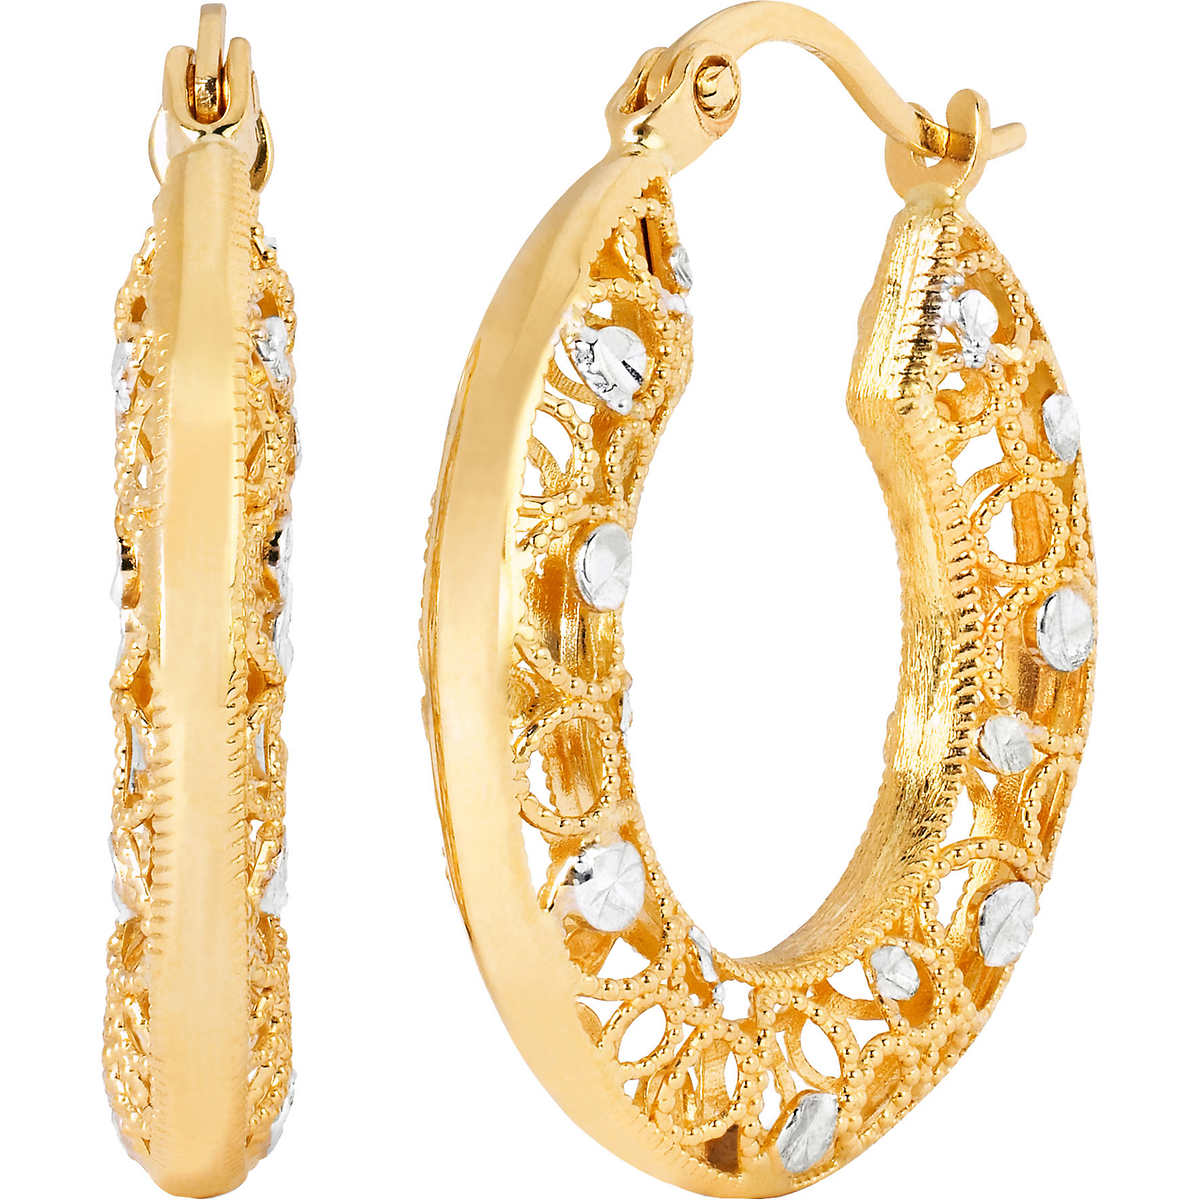 14kt Two Tone Gold Diamond Cut Hoop Earrings Item #458641 Click To Zoom